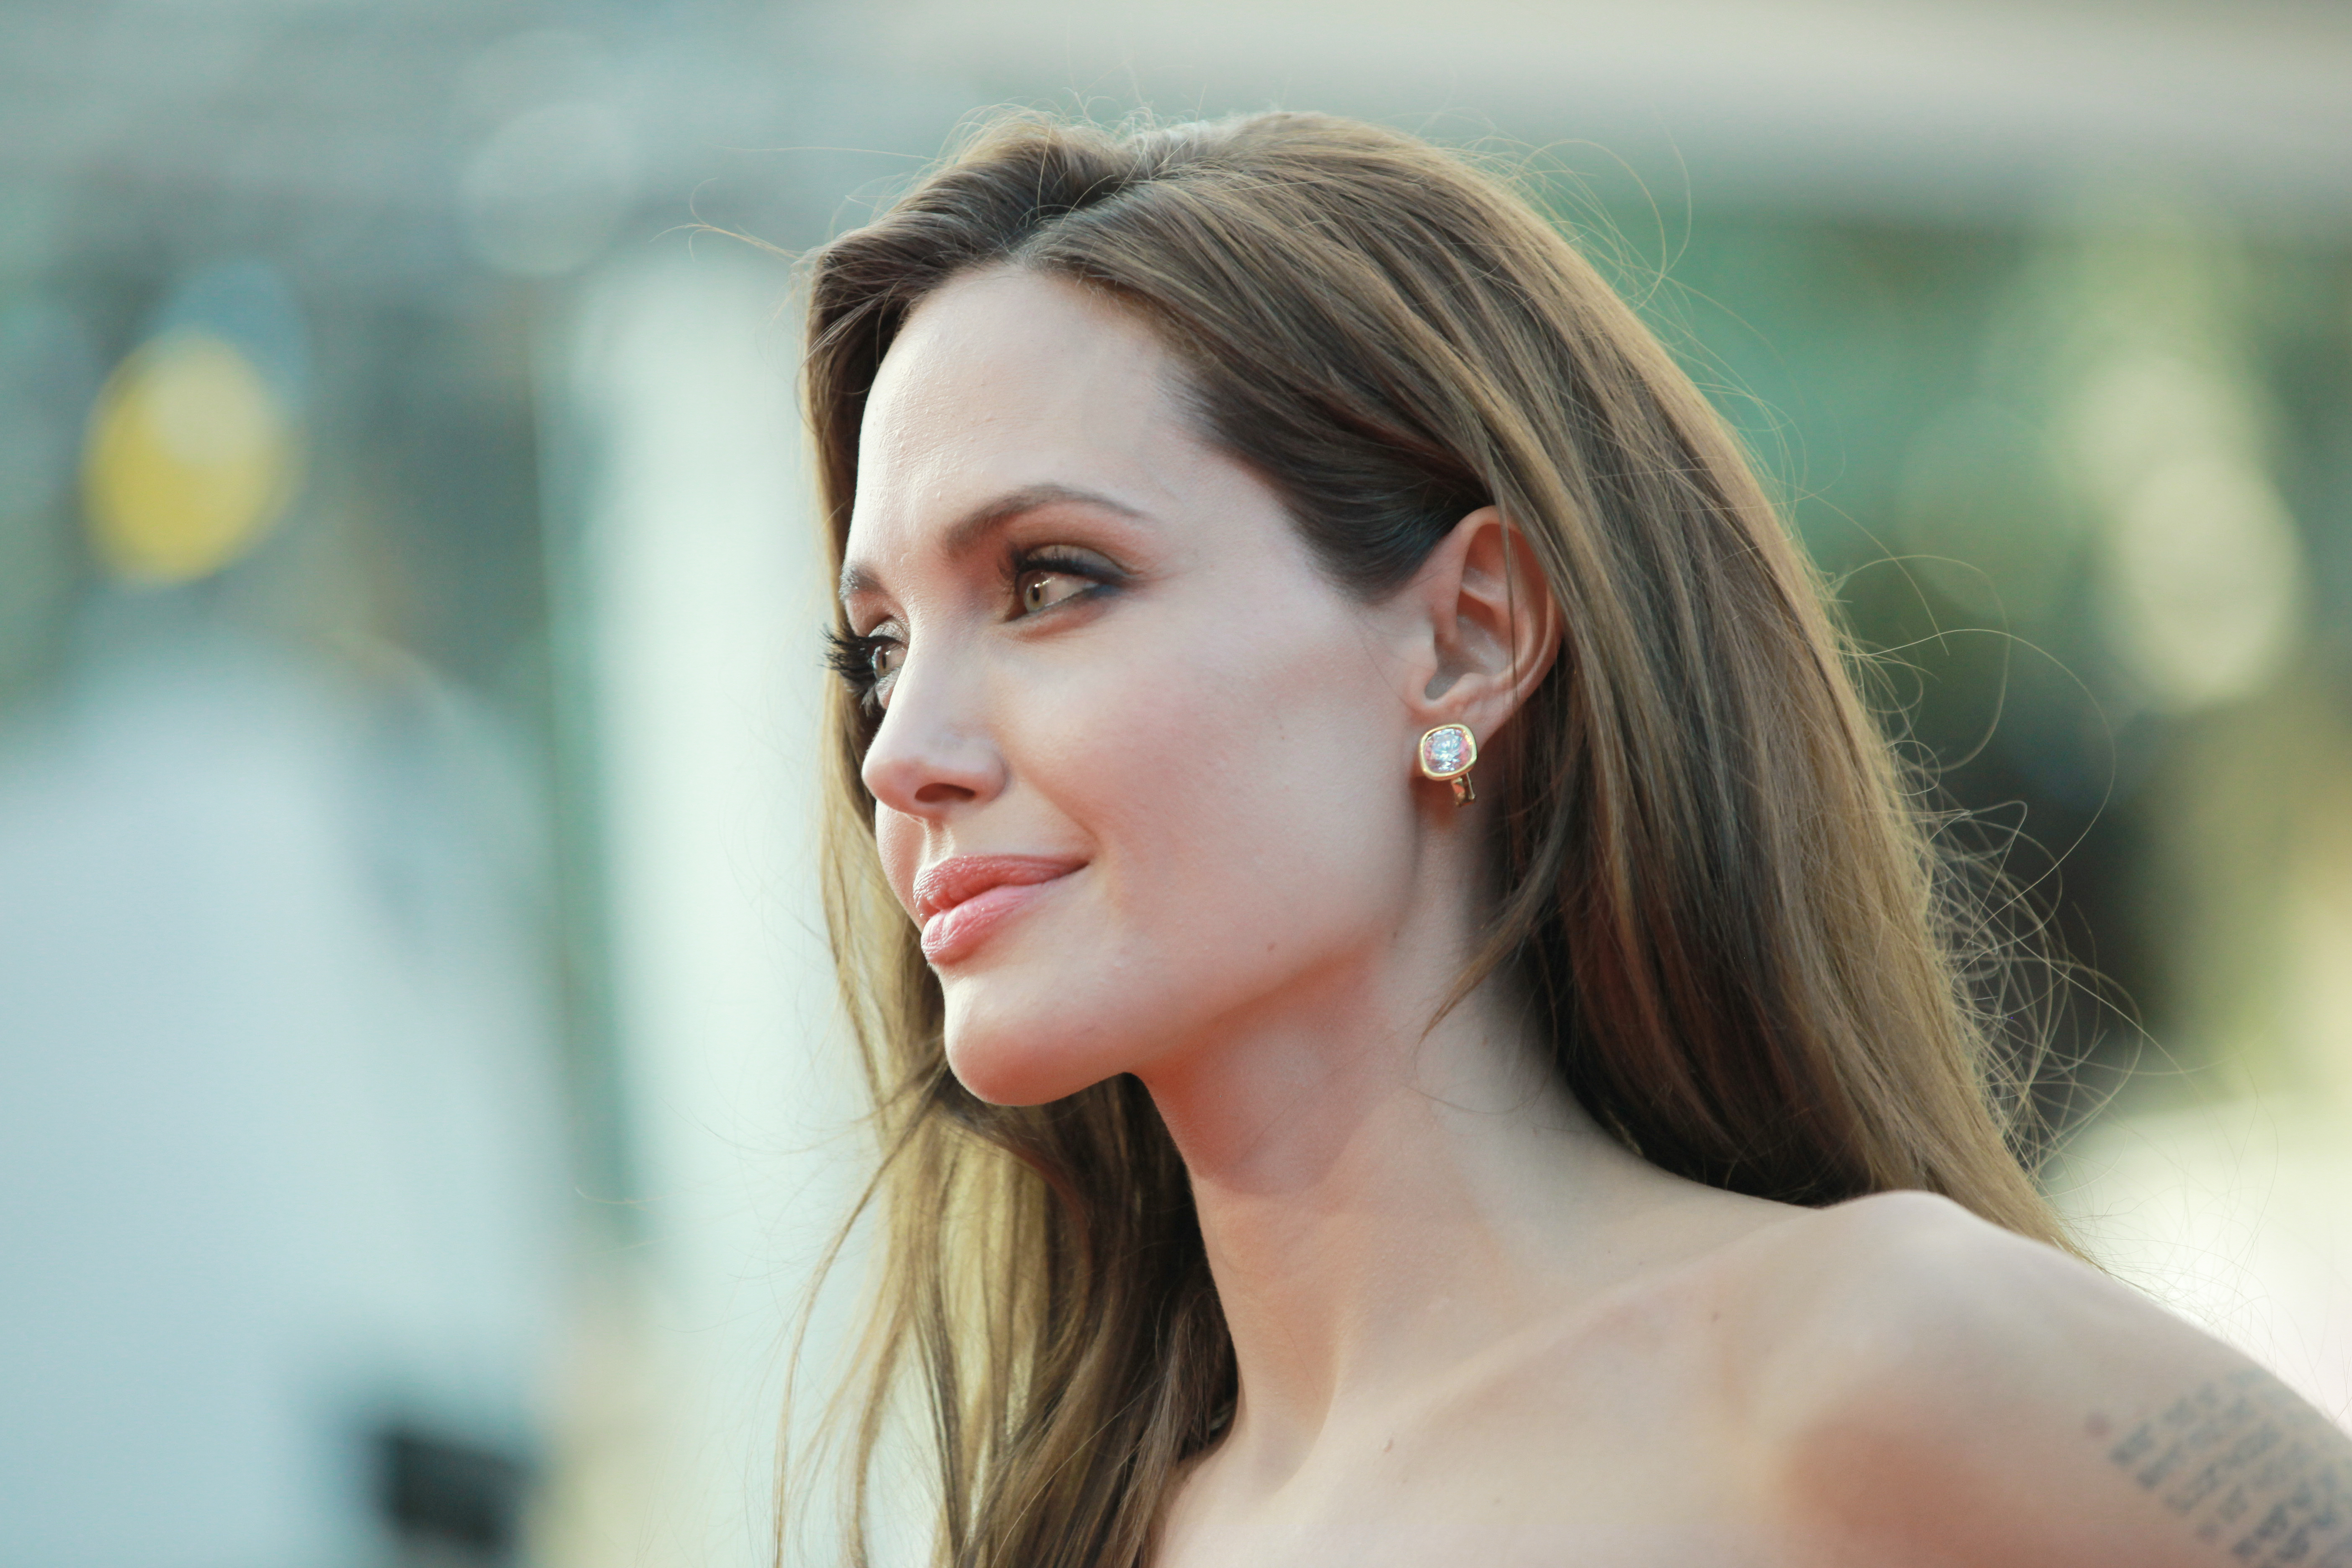 The 'Angelina Jolie Effect': Cancer Tests Among Women Doubled After The Celebrity's Double ...